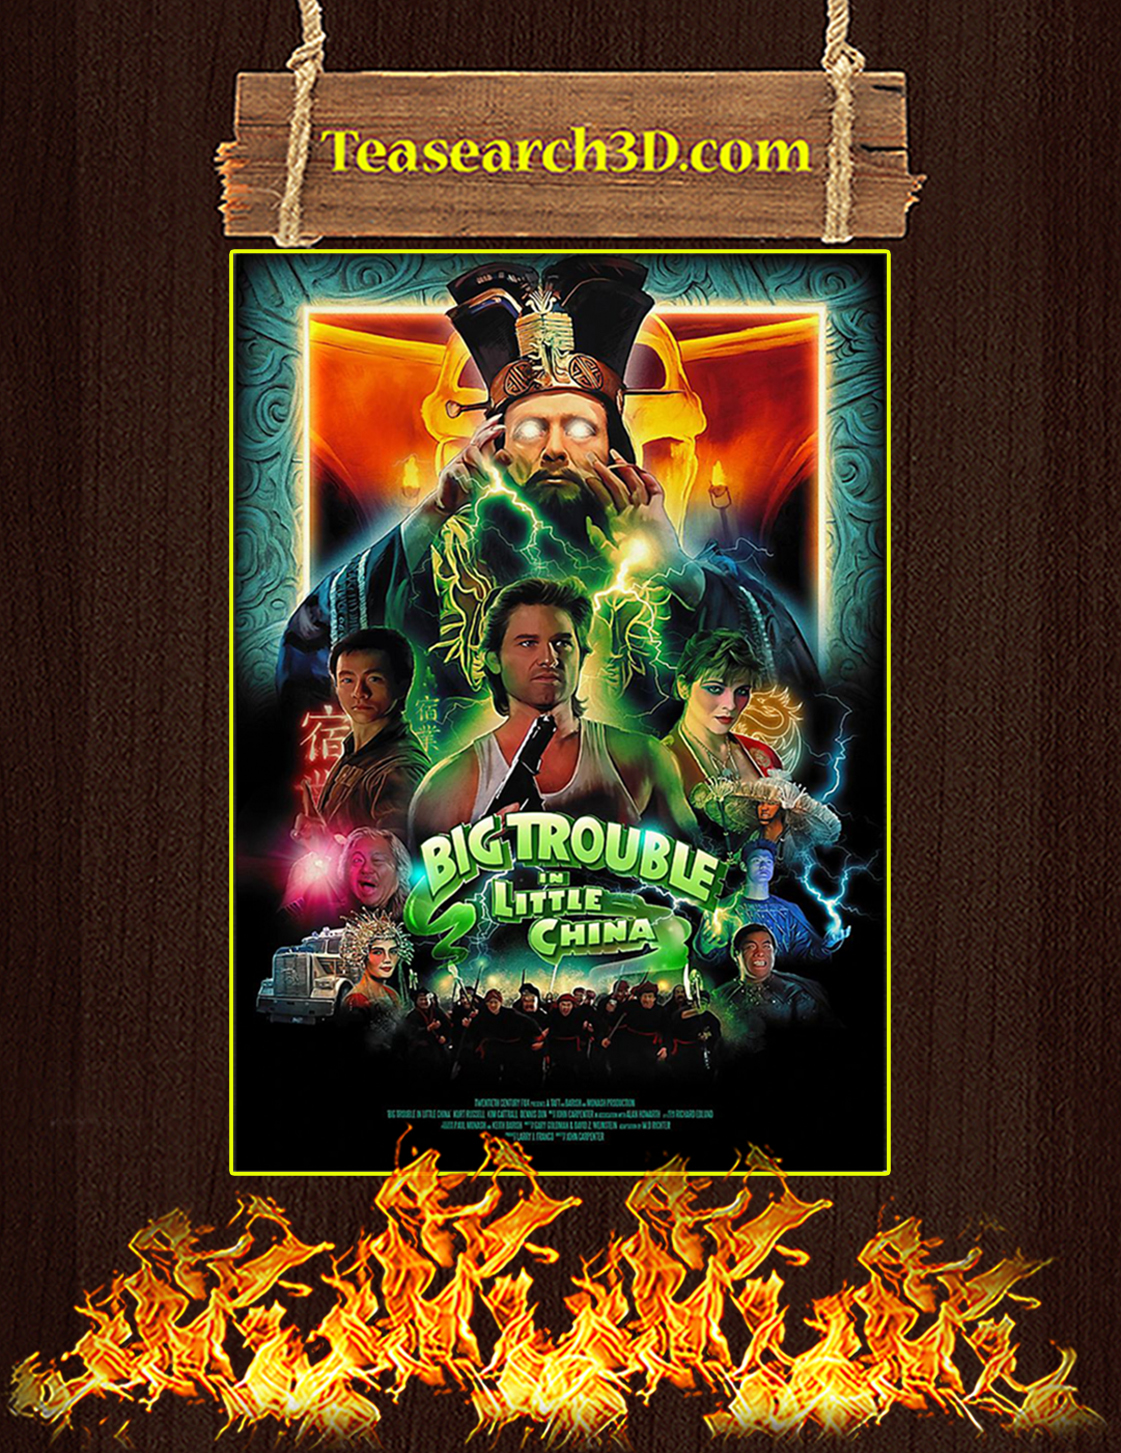 Big trouble in little china poster A3